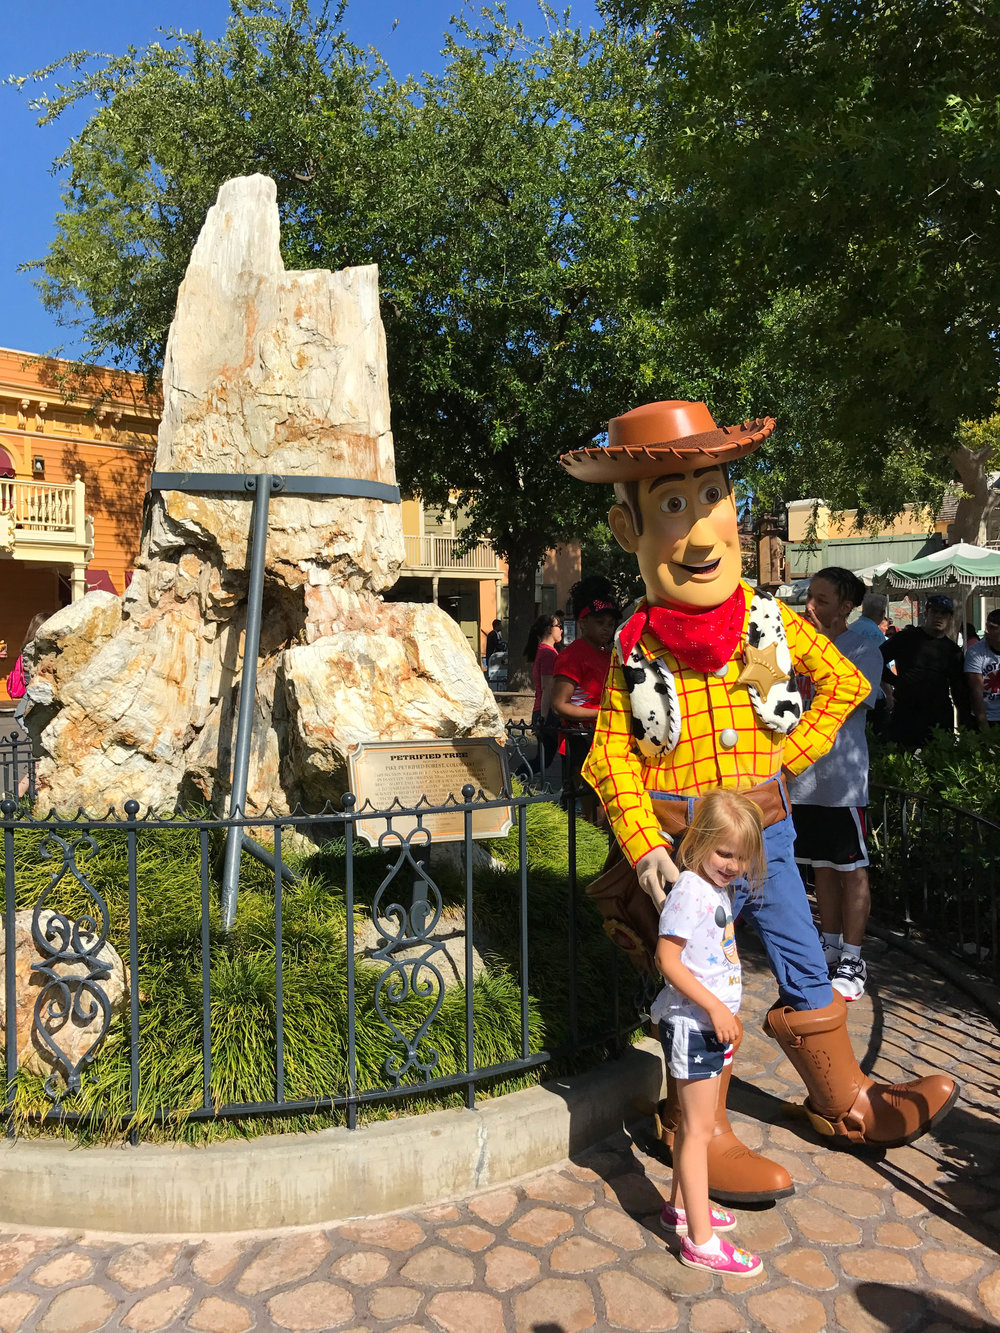 Nothing better than Woody in front of petrified wood.